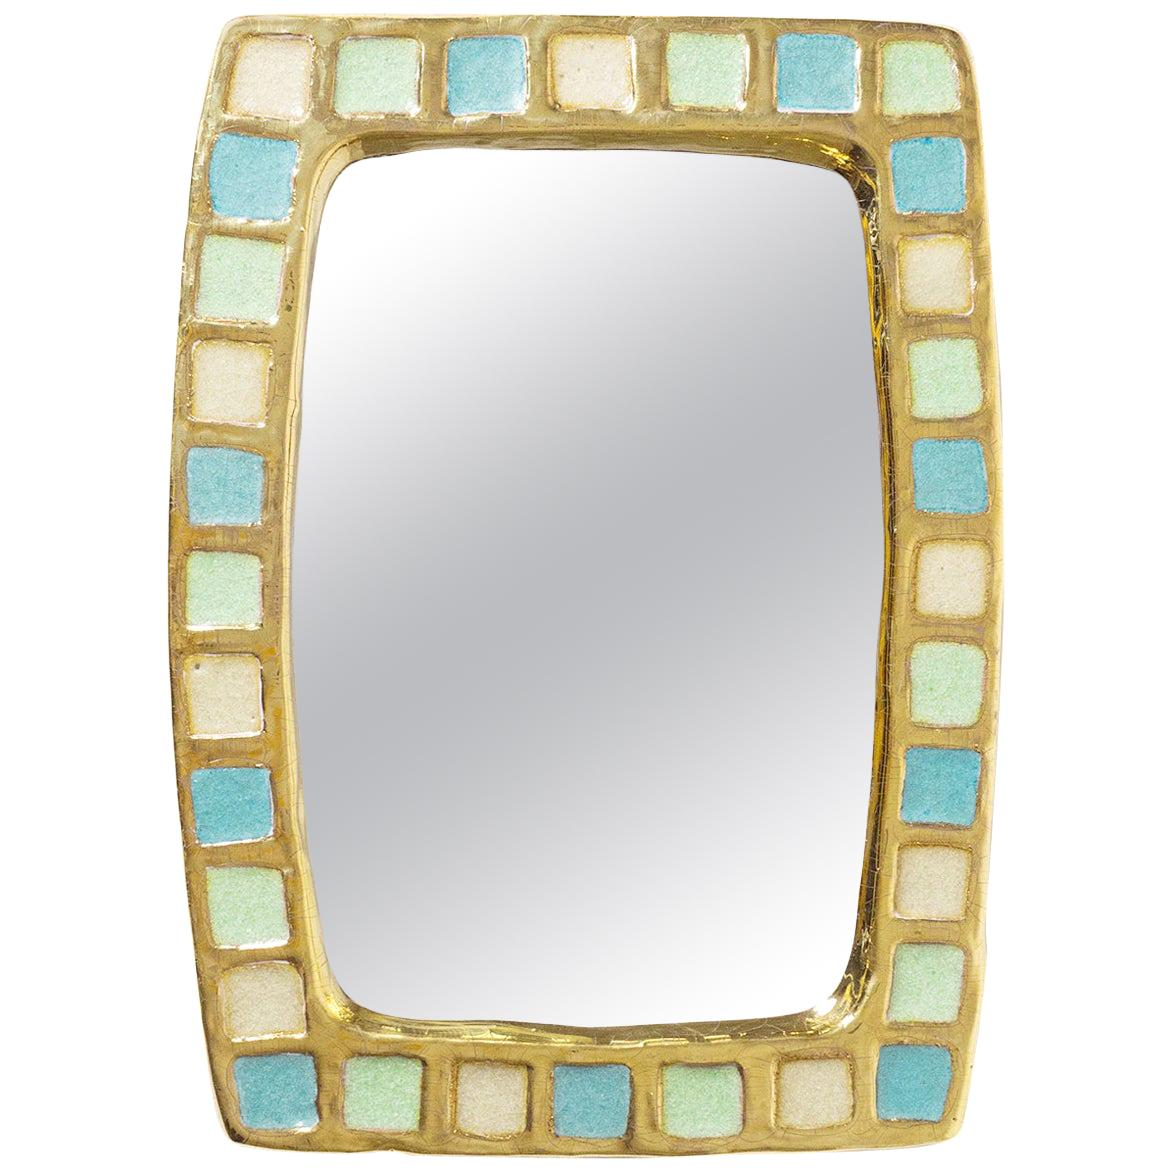 Gold Glazed Ceramic Mirror by Mithé Espelt, 1960s